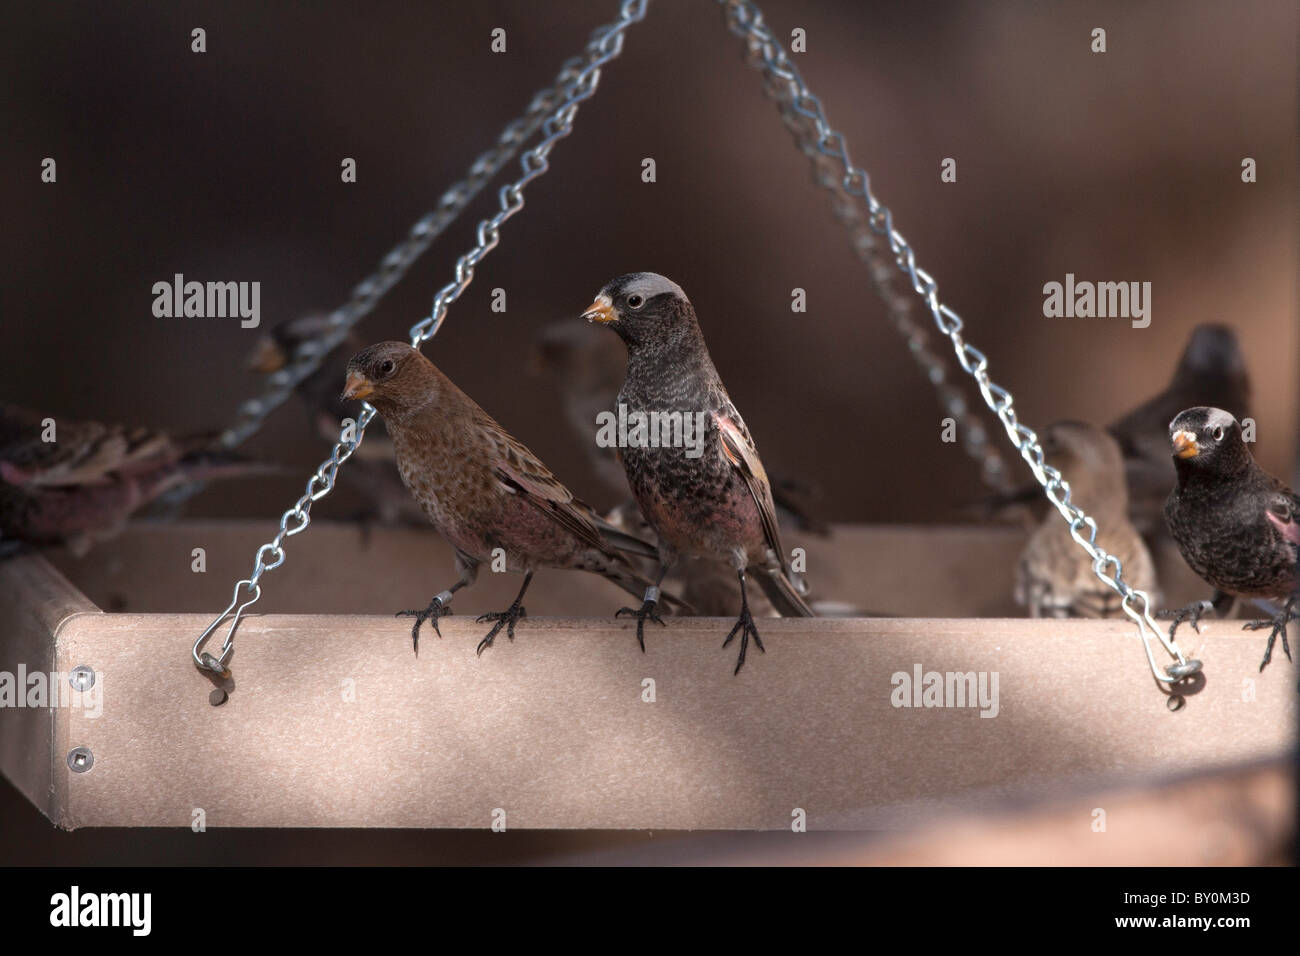 Black and Brown Capped Rosy Finches - Stock Image